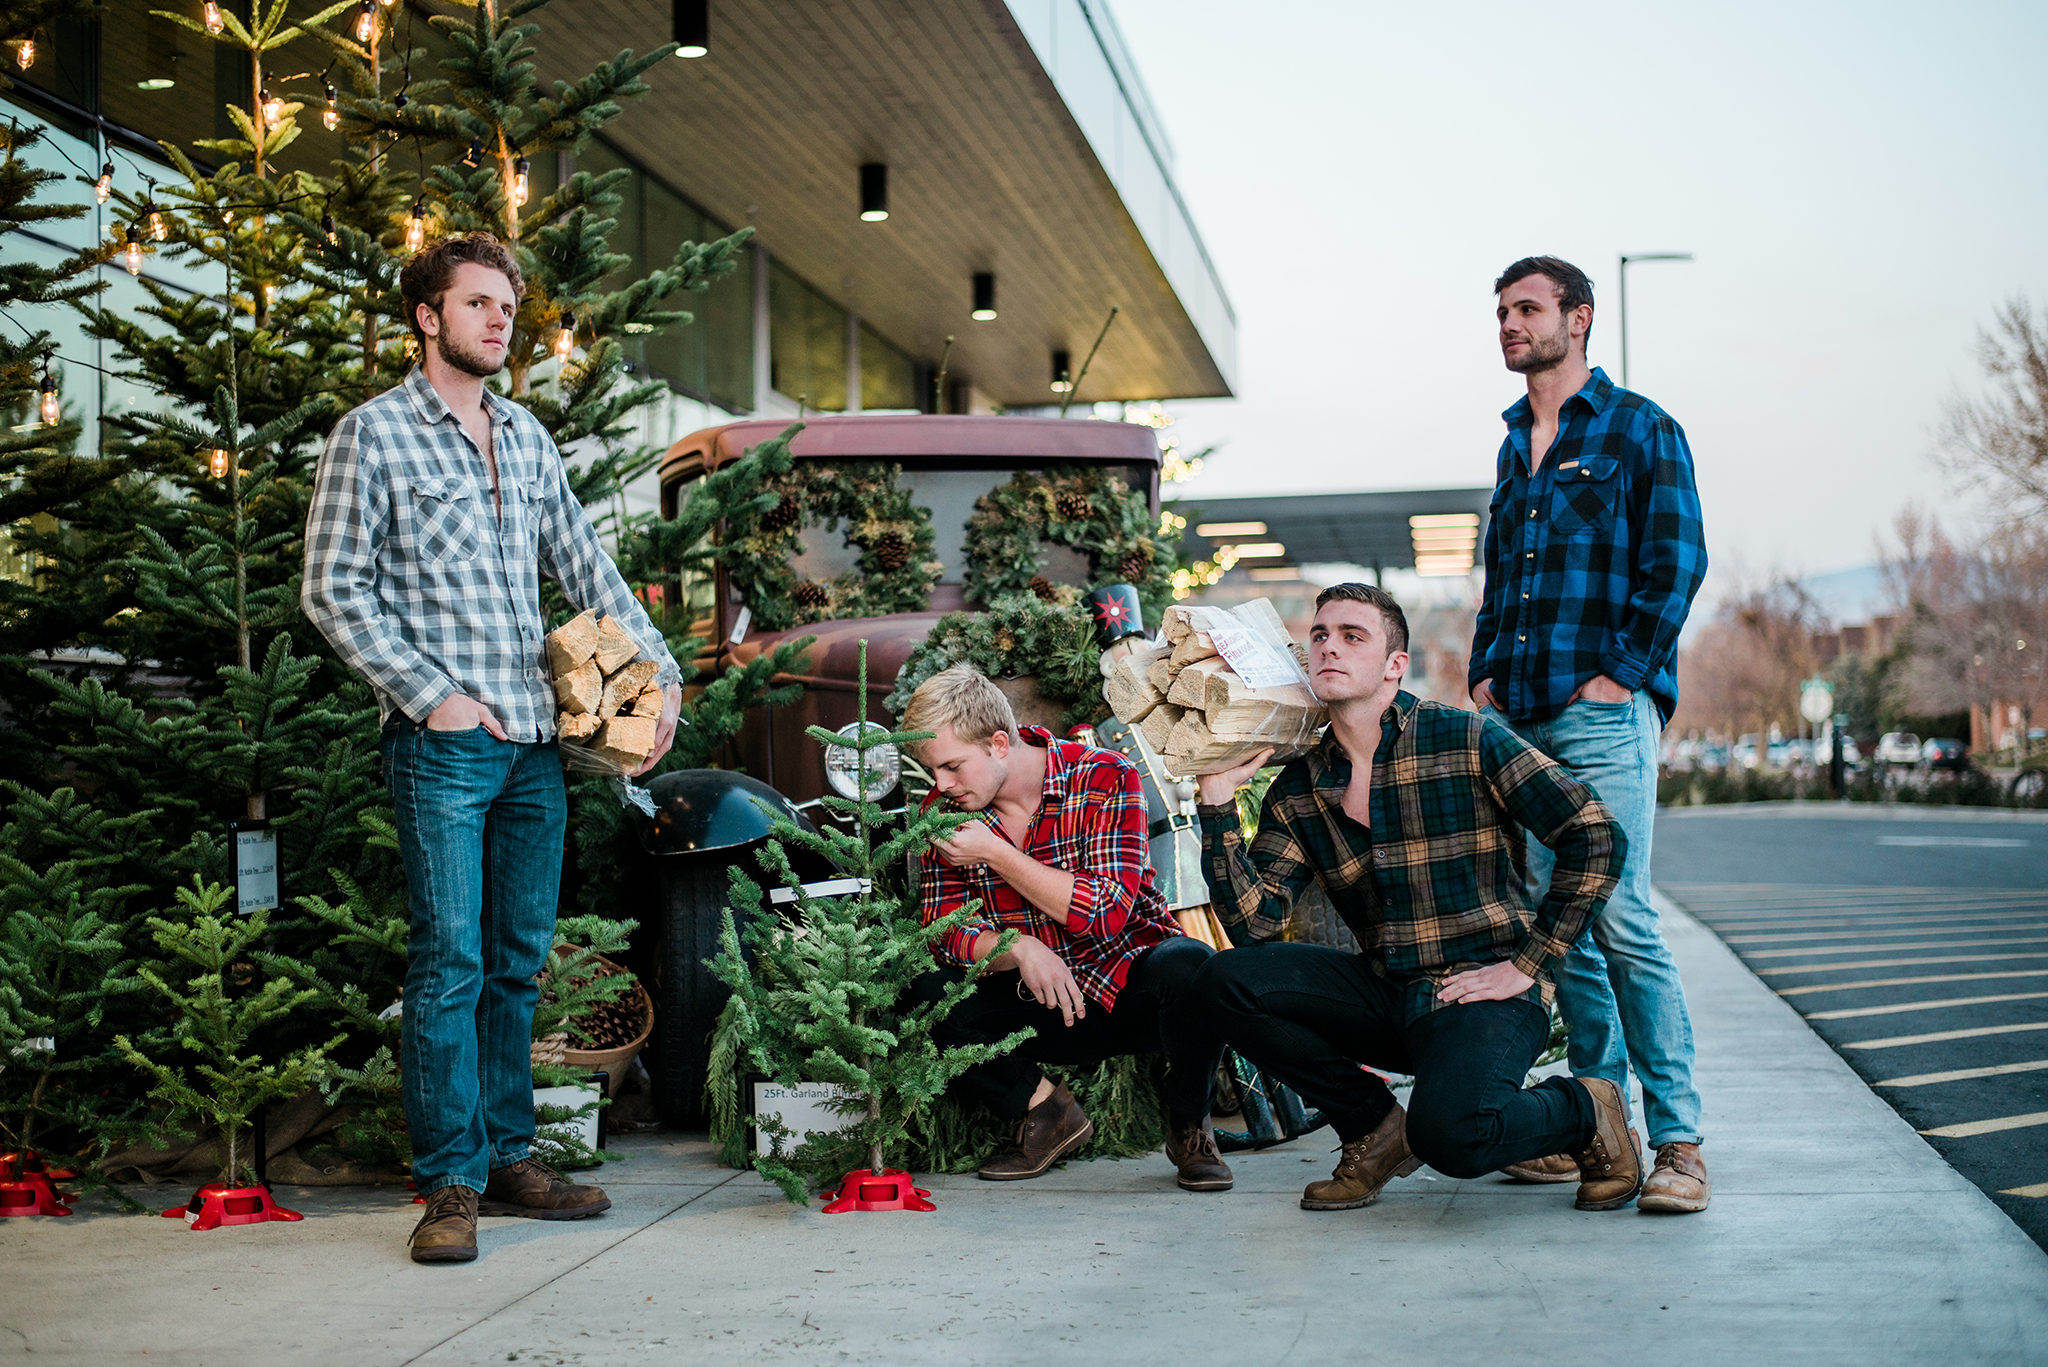 awkward family photos / SS Photography & Design / Roommate Photoshoot / Photoshop / Team photos / Best Christmas Gifts / Holiday Calendar / Christmas Cards / Holidays / Awkward Christmas Photos / Ugly Sweater Photos / Winter Photos / 80's aesthetic / Film Style / 90's photoshoot / Photo Composites / Lumbersexuals / Sadie Shirts